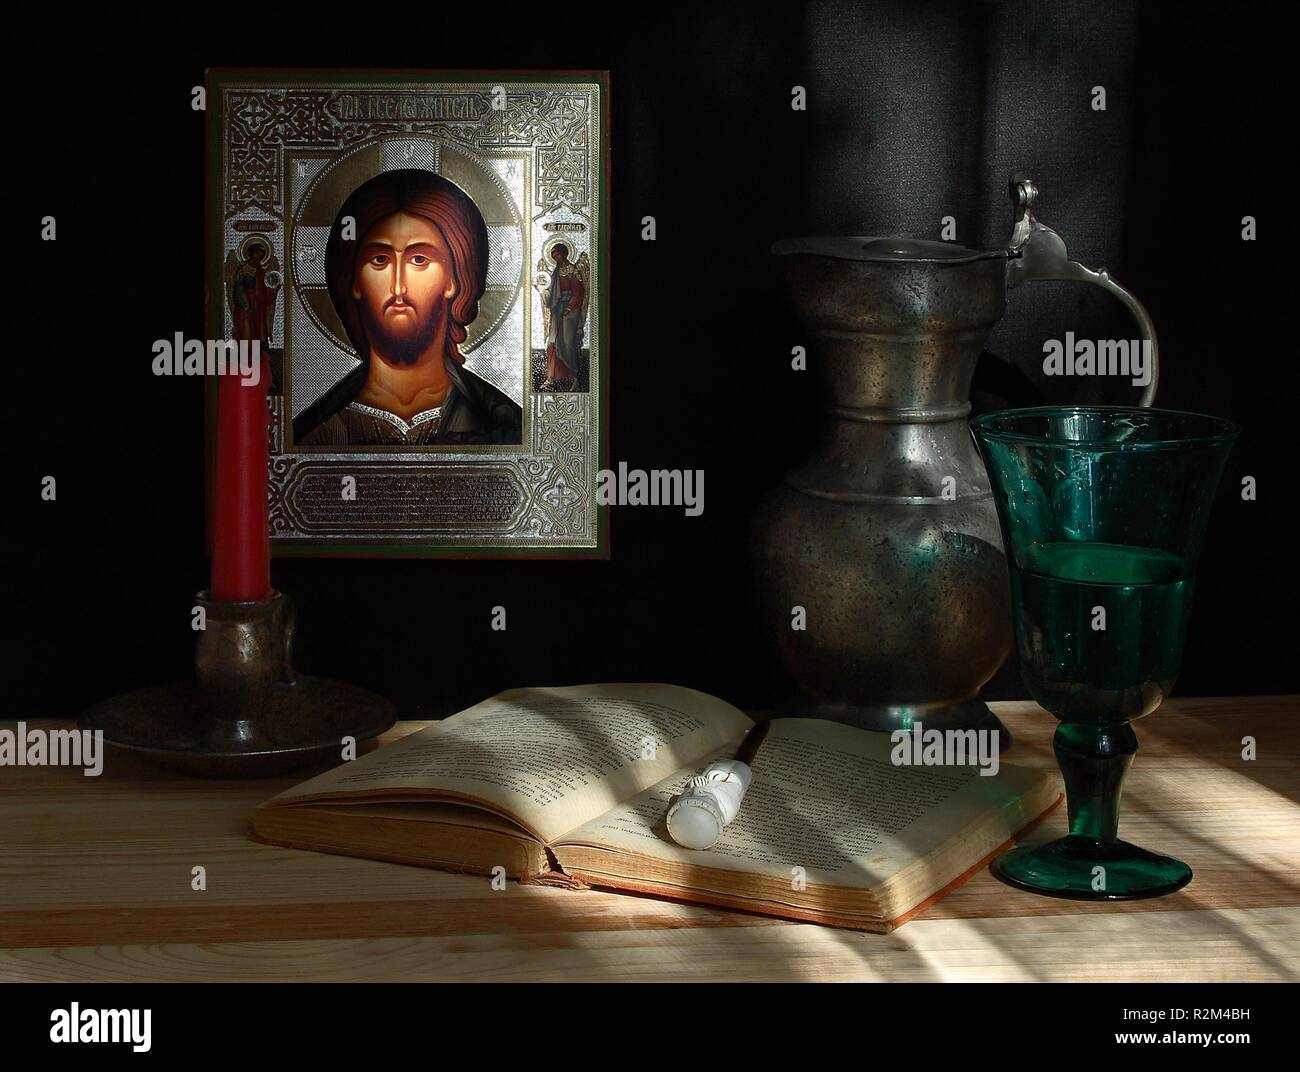 still life with icon. picture 2 - Stock Image